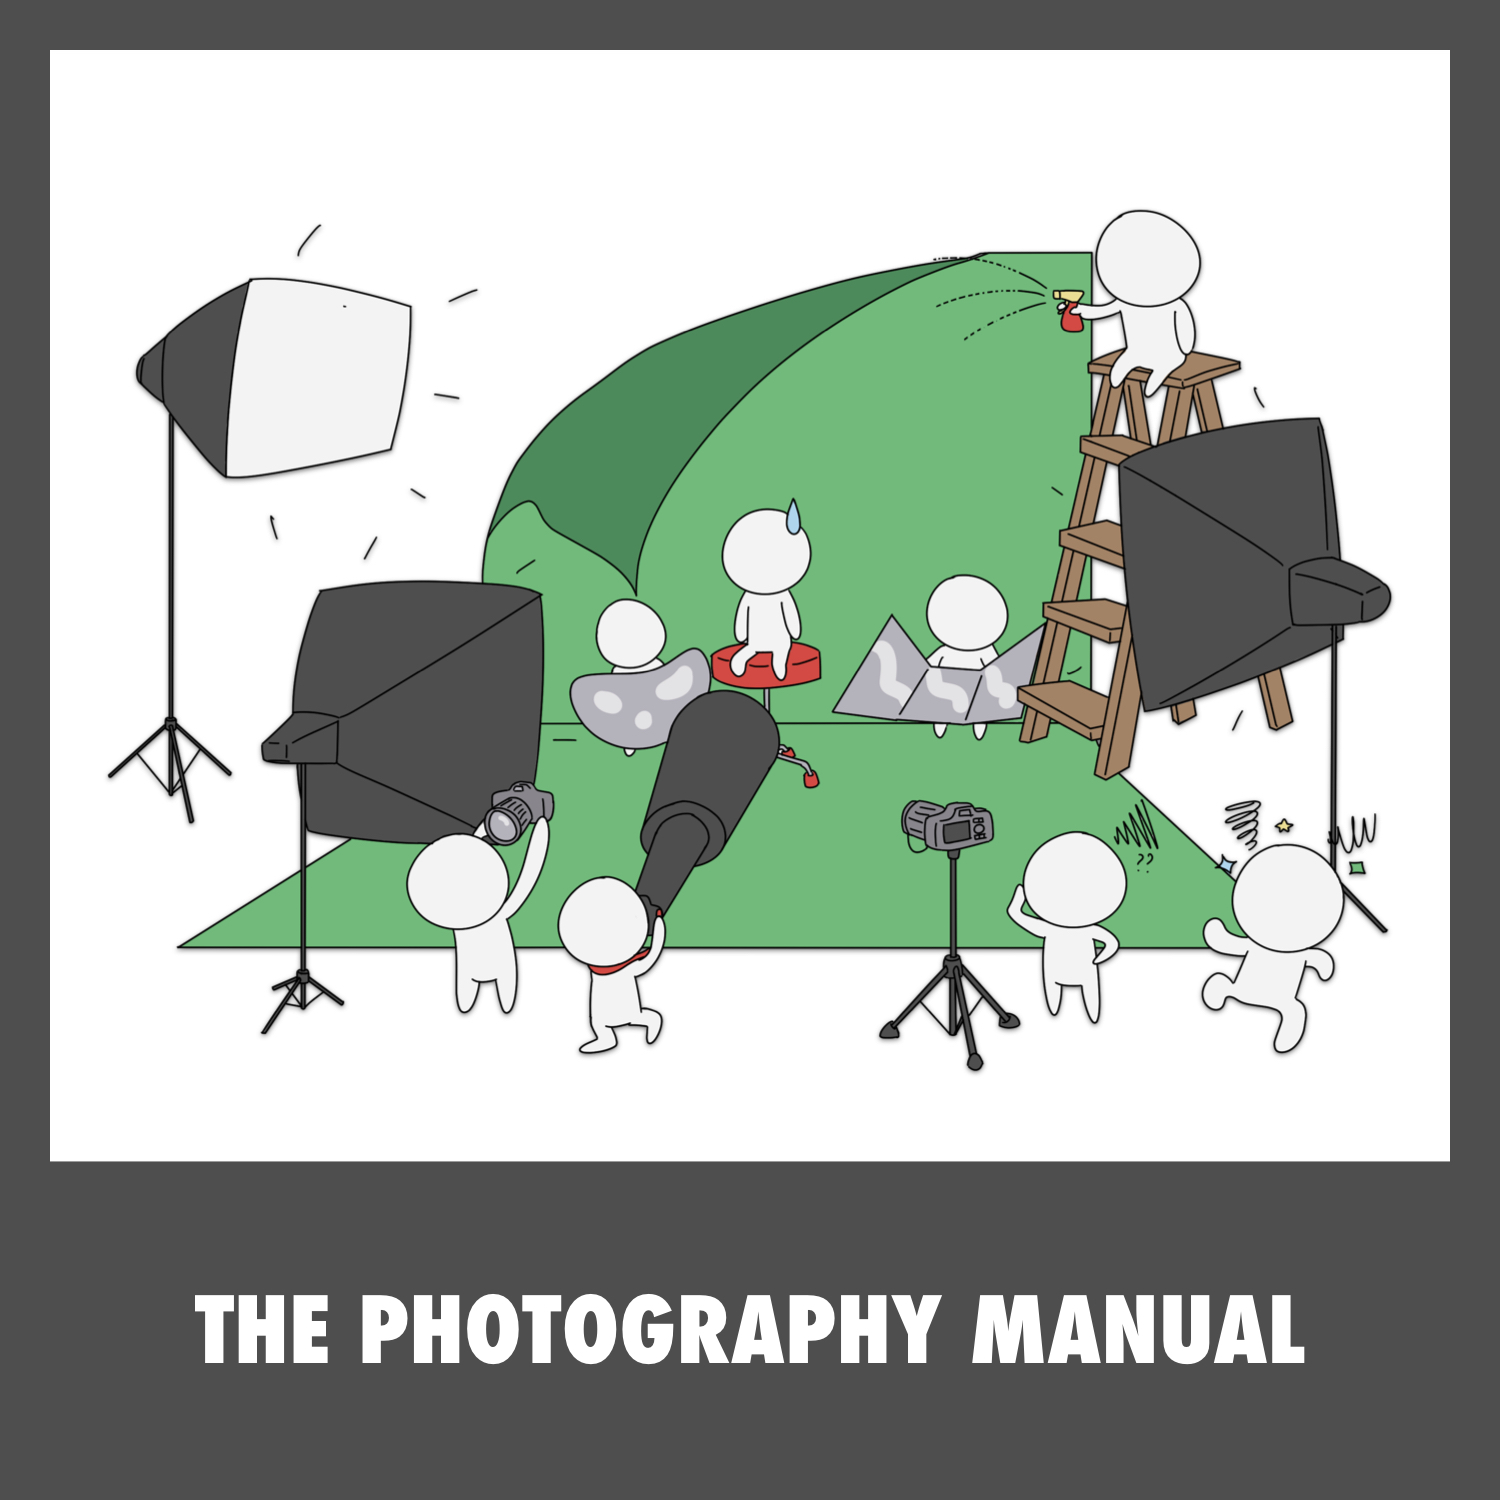 The Photography Manual